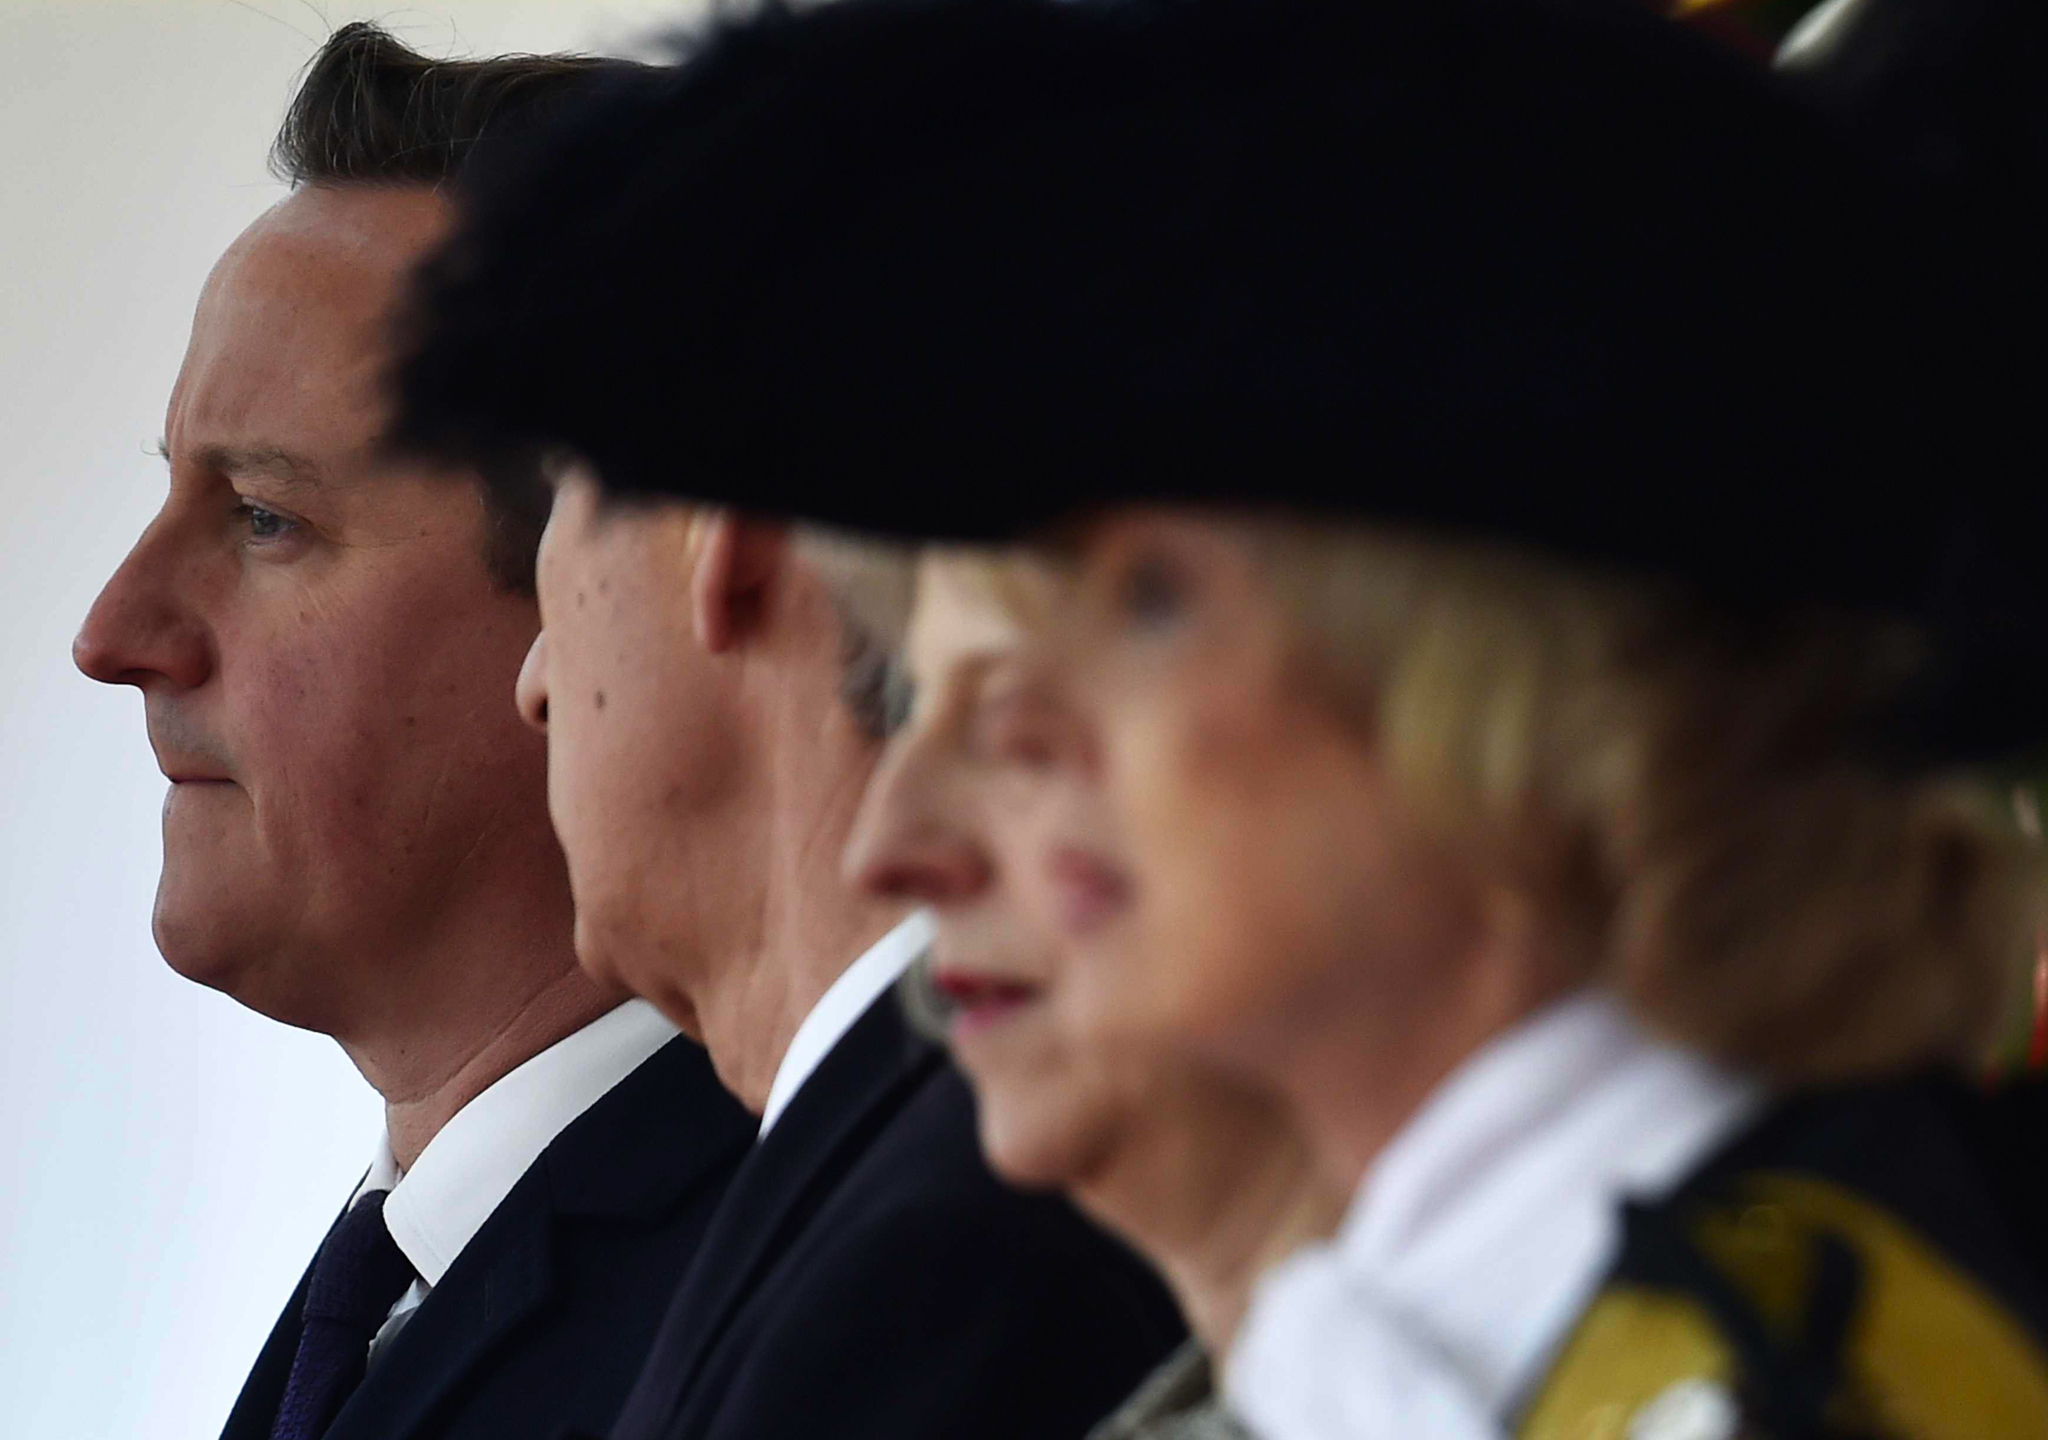 Britain's Prime Minister David Cameron (L) attends a ceremonial welcome for the President of Singapore Tony Tan, and his wife, at Horse Guards Parade in London. The President and his wife will be guests of Queen Elizabeth during the first state visit of a Singapore President to Britain.